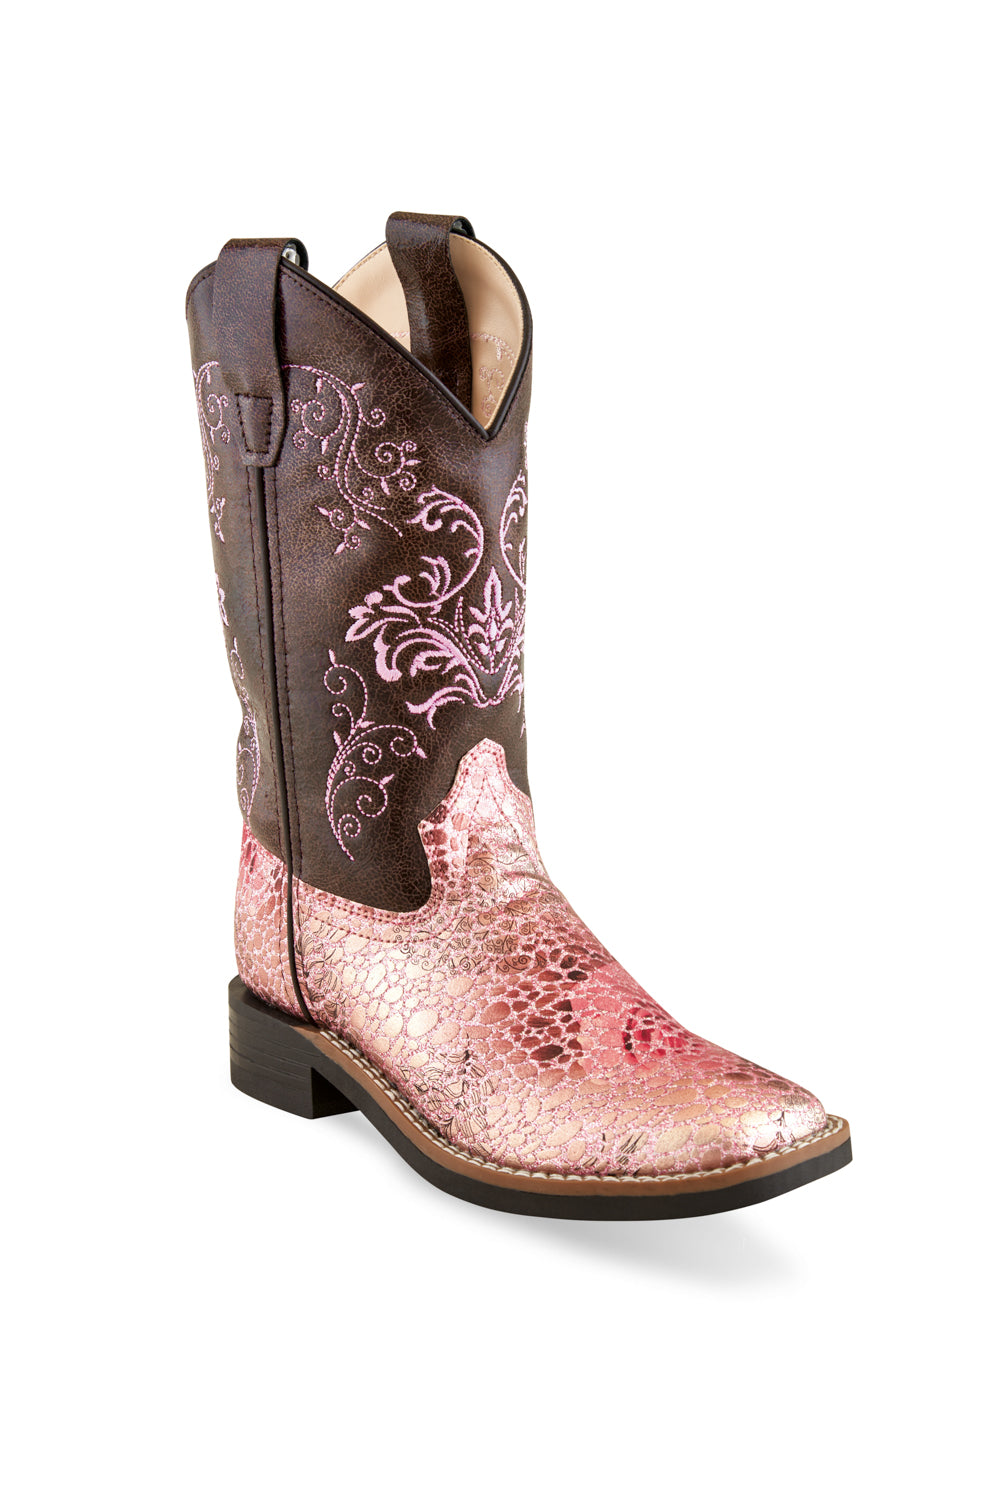 389ee47e61a Old West Antique Pink/Crackle Children Girls Faux Leather Cowboy Boots